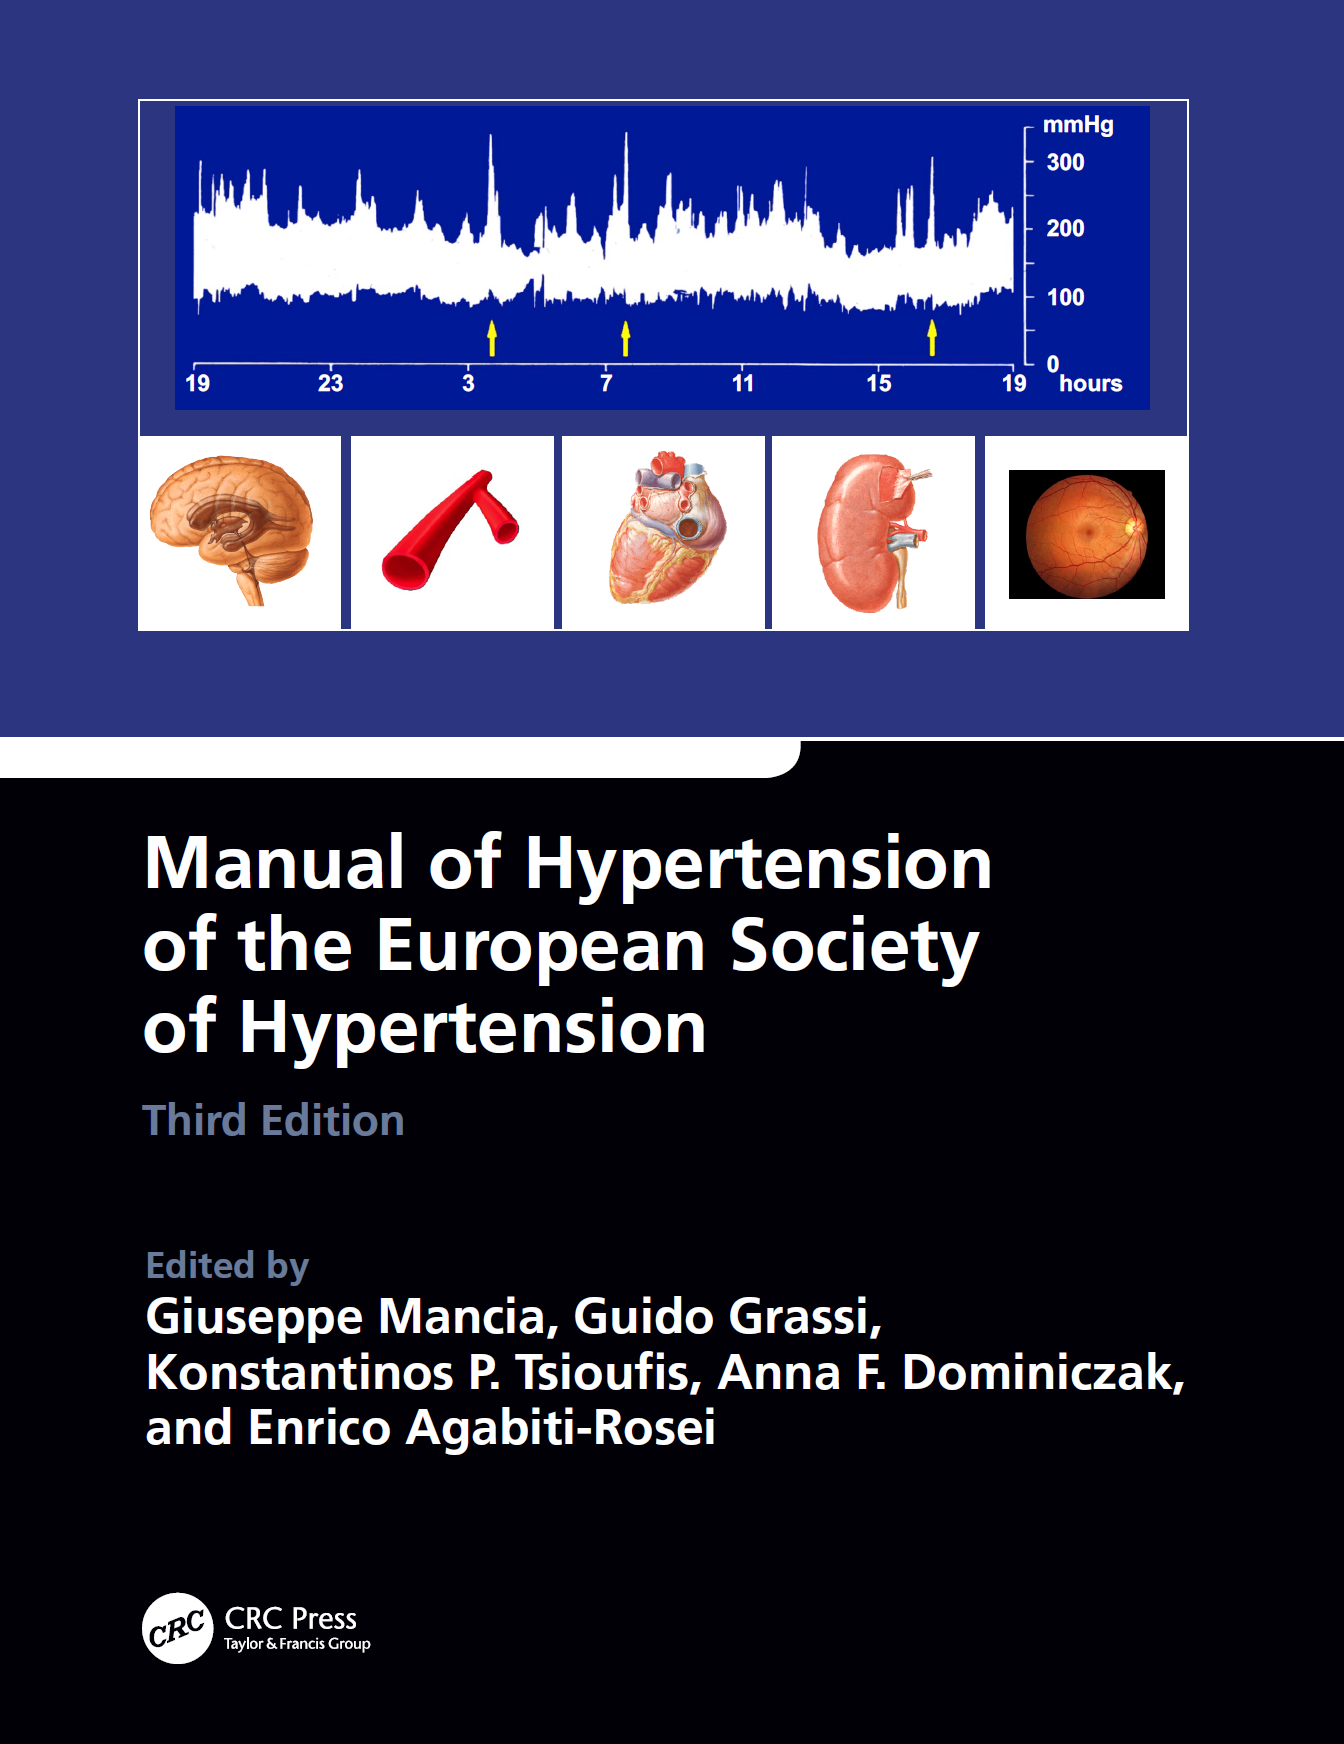 Manual of Hypertension of the European Society of Hypertension